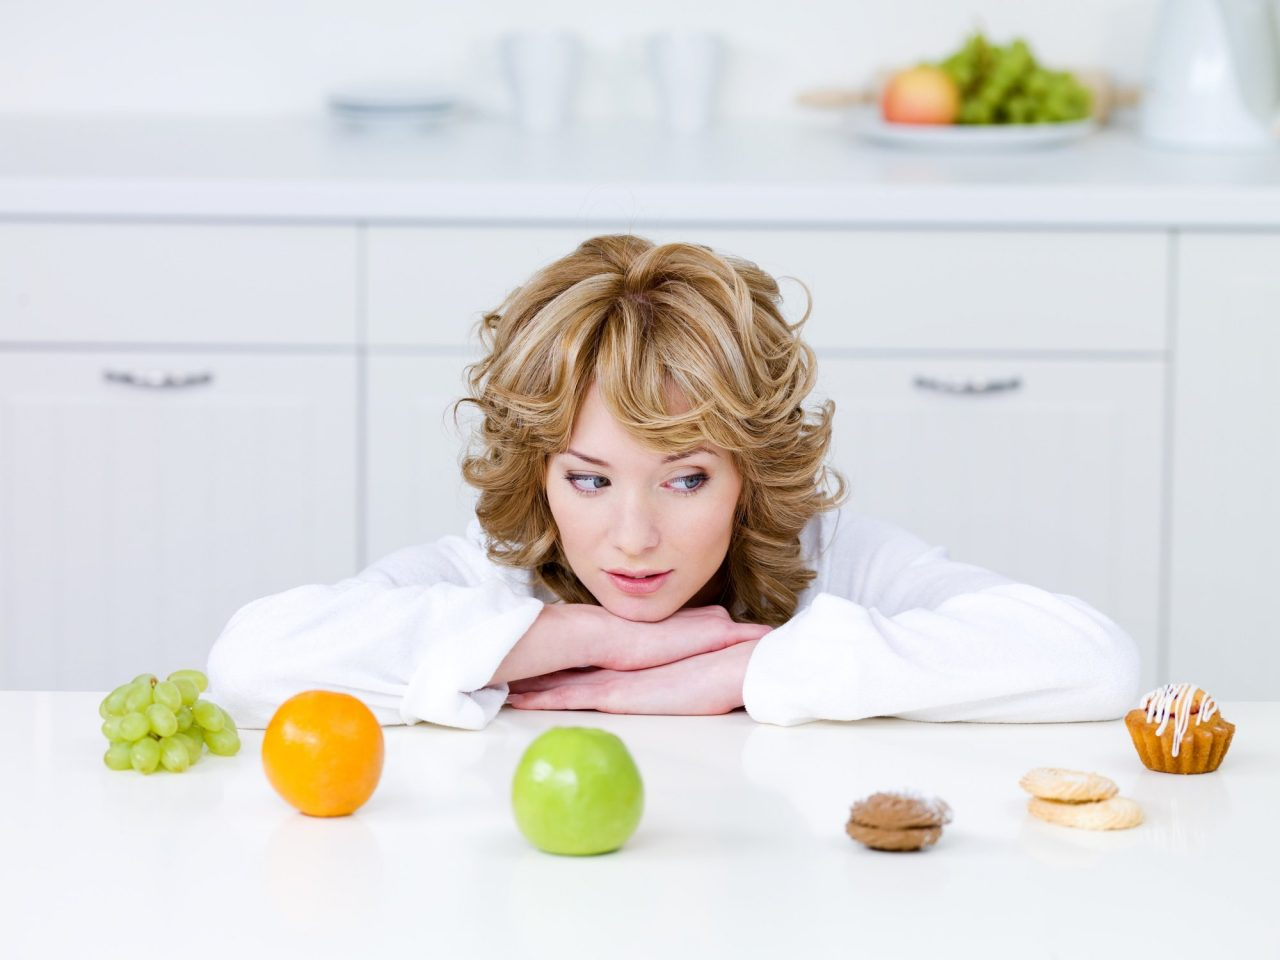 beautiful-young-woman-sitting-kitchen-choosing-healthy-fruits-tasty-cakes